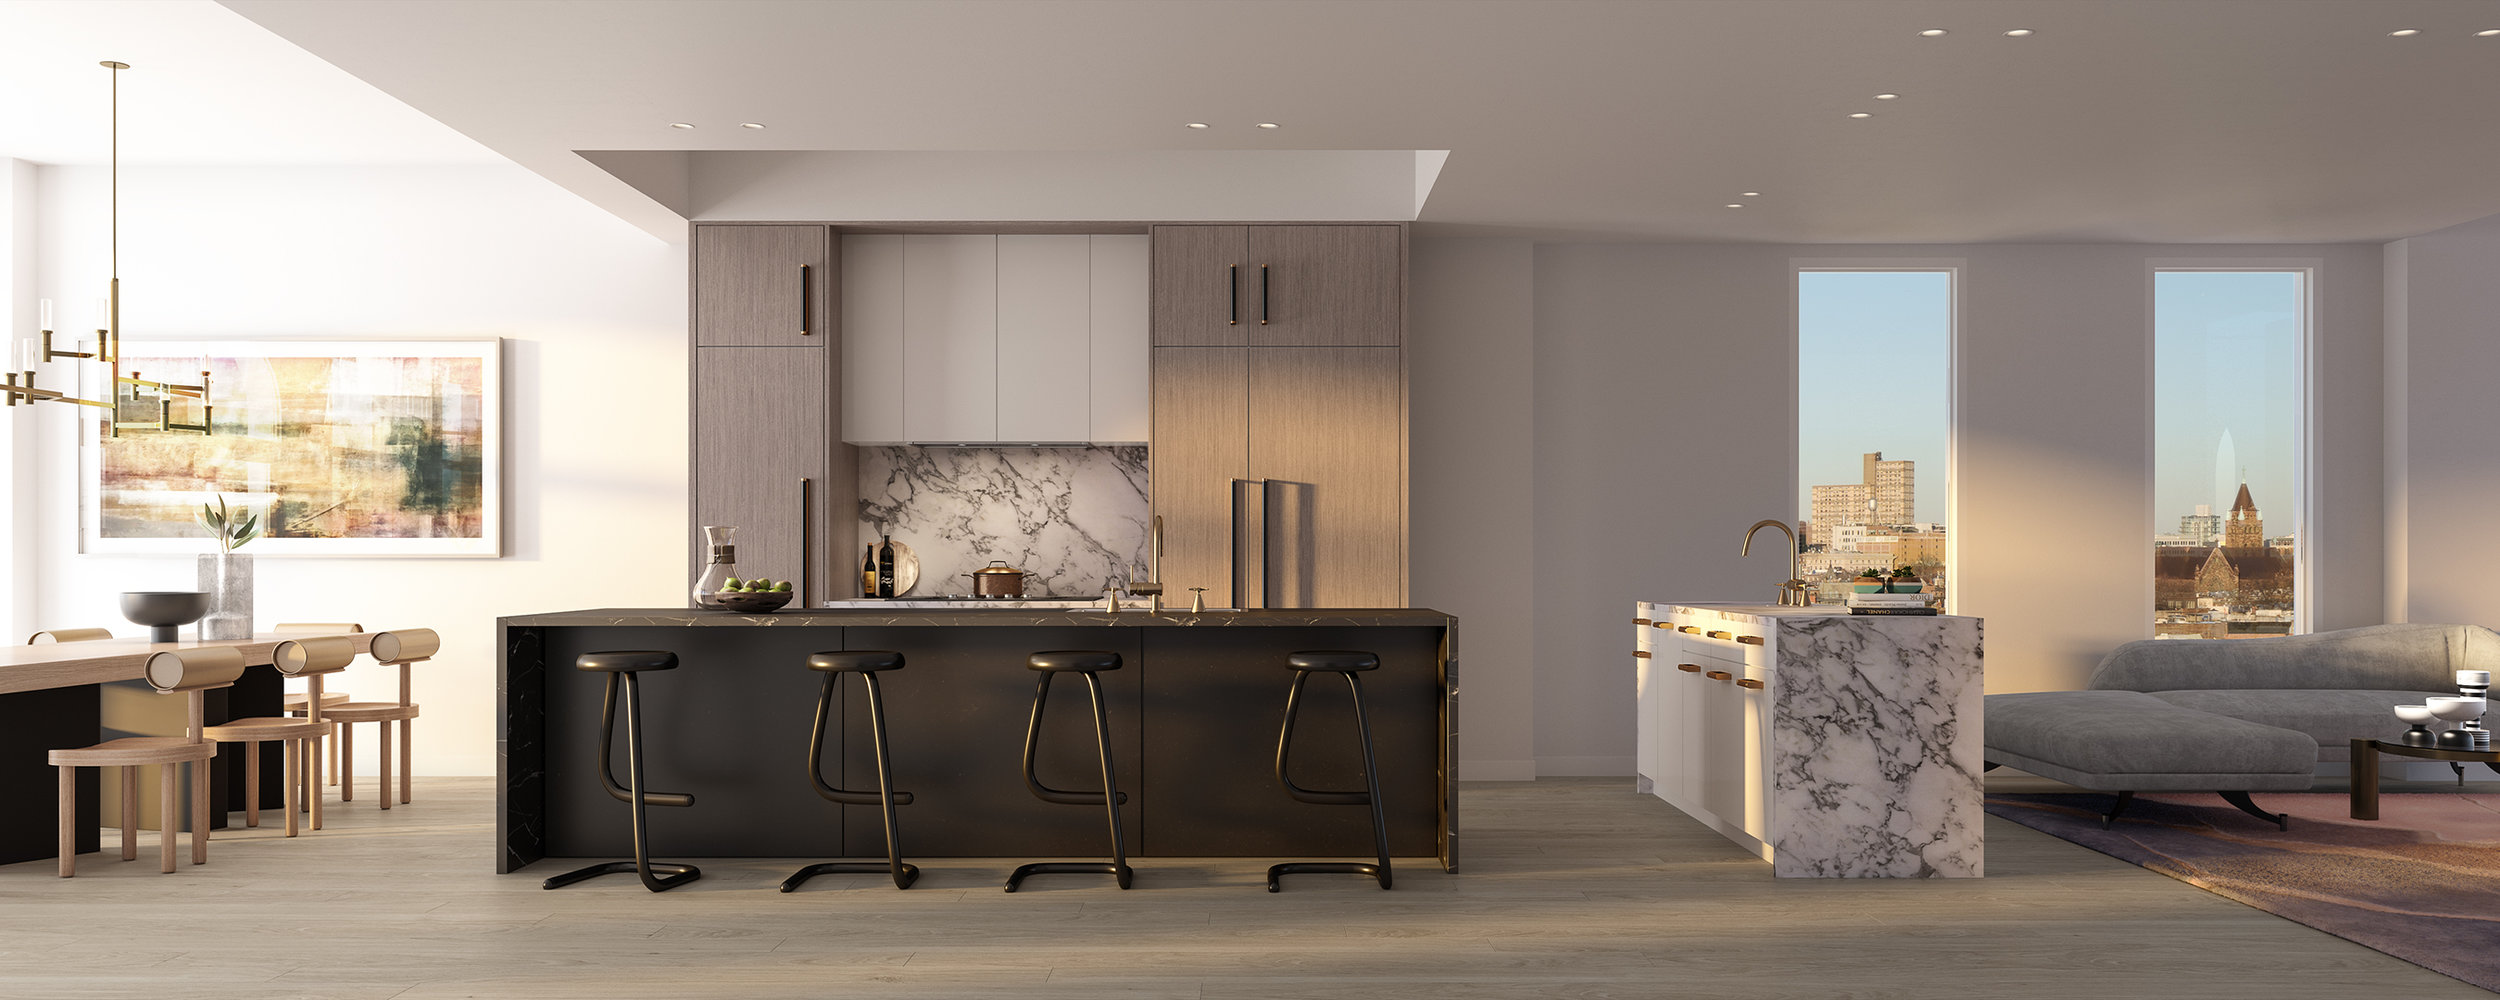 Parlour Brooklyn Penthouse Kitchen and Dining Rendering